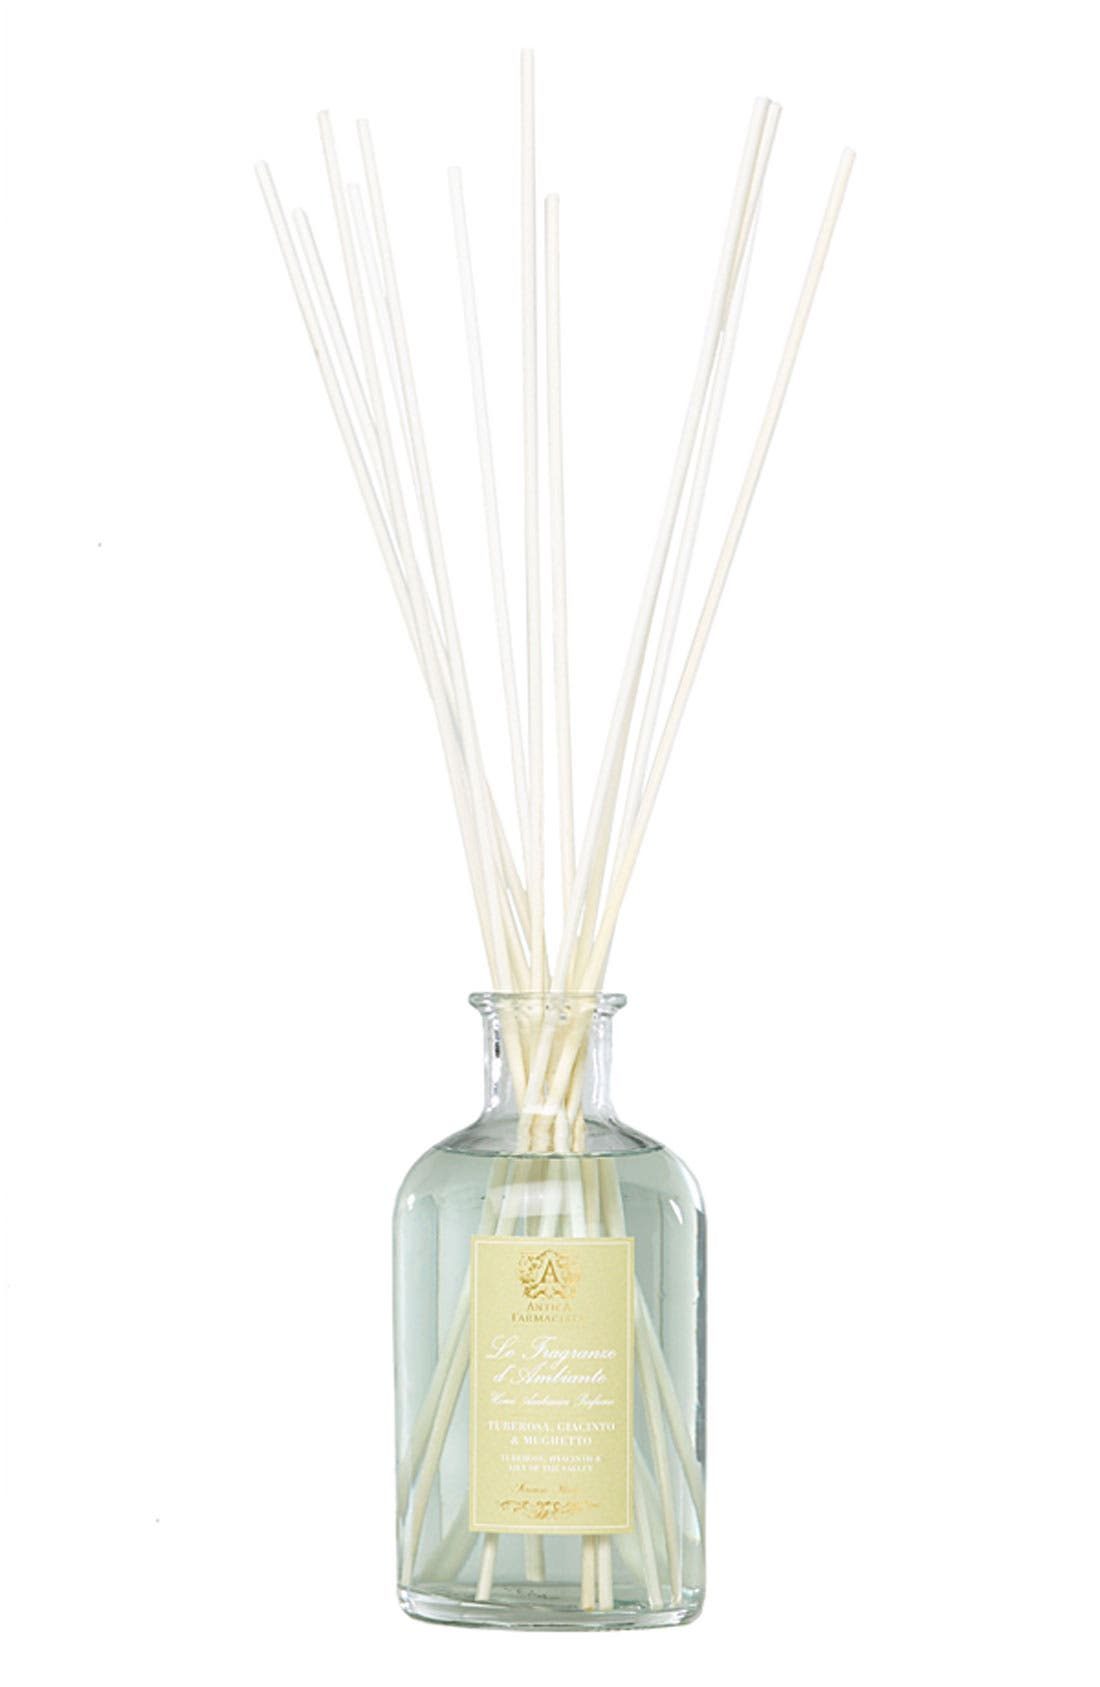 Main Image - Antica Farmacista 'Tuberose, Hyacinth & Lily of the Valley' Home Ambiance Perfume